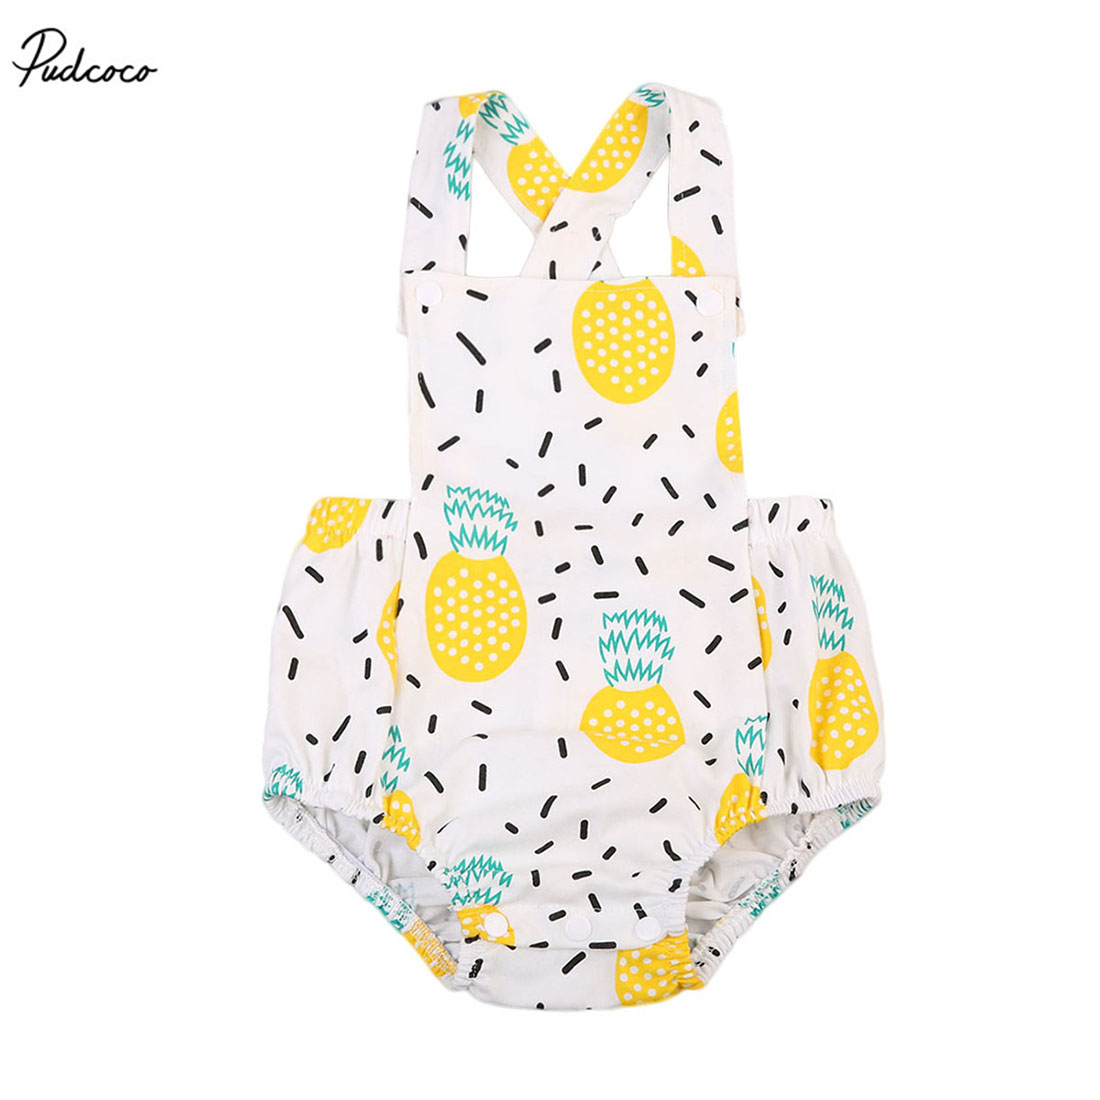 Cute Infant Baby Girl Clothes Pineapple Print Jumpsuit Sleeveless Backless Bandage Romper Polka Dot One Piece Outfit Sunsuit pineapple print flat sliders